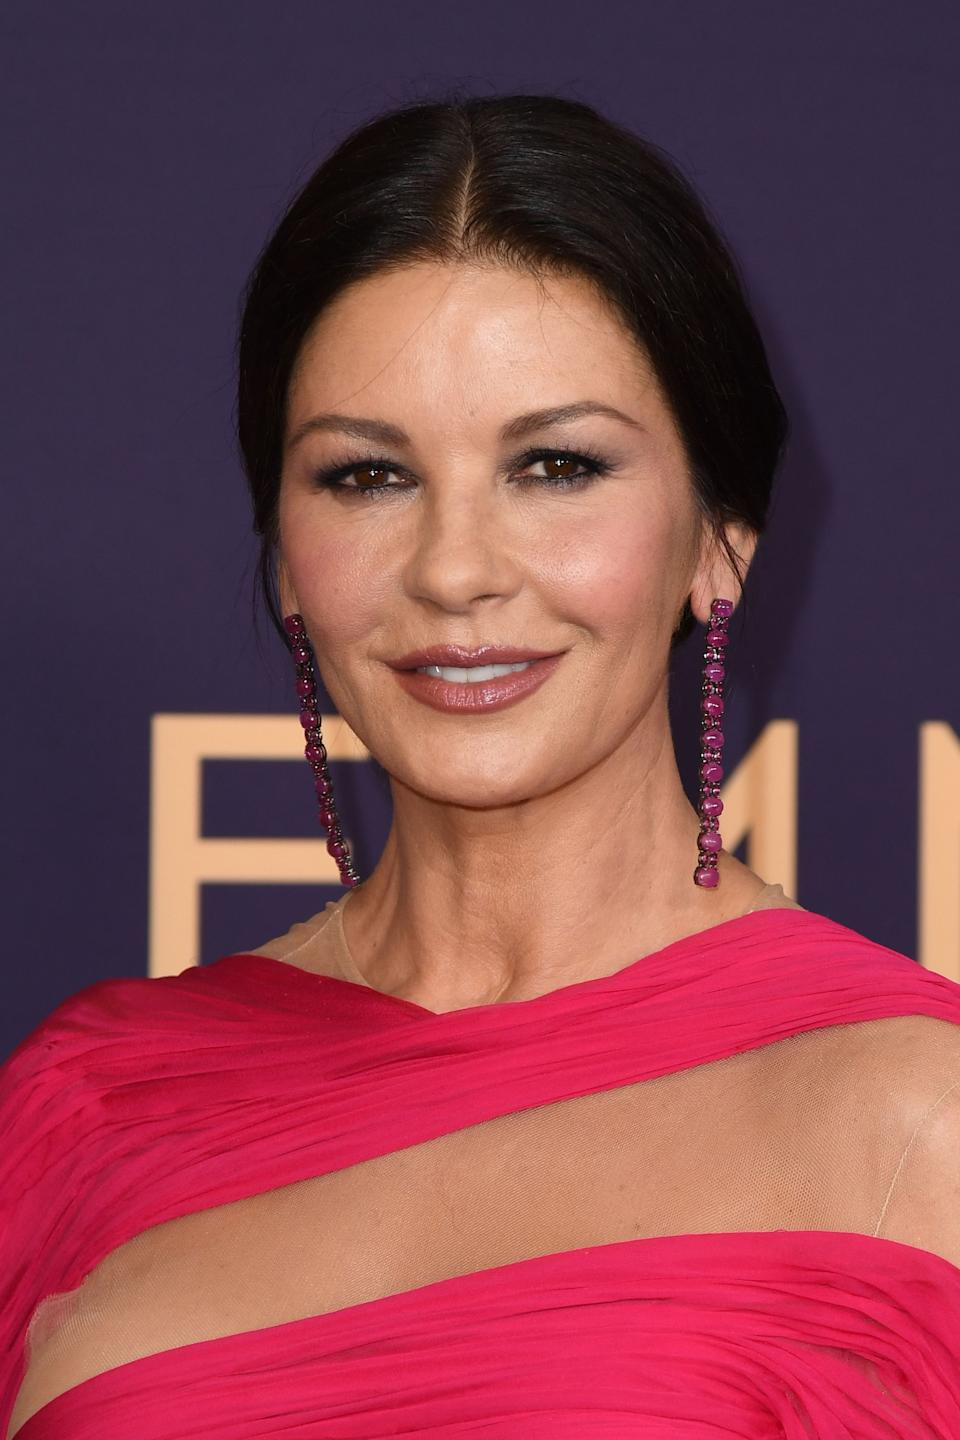 Welsh actress Catherine Zeta-Jones arrives for the 71st Emmy Awards at the Microsoft Theatre in Los Angeles on September 22, 2019. (Photo by Robyn Beck / AFP)        (Photo credit should read ROBYN BECK/AFP/Getty Images)